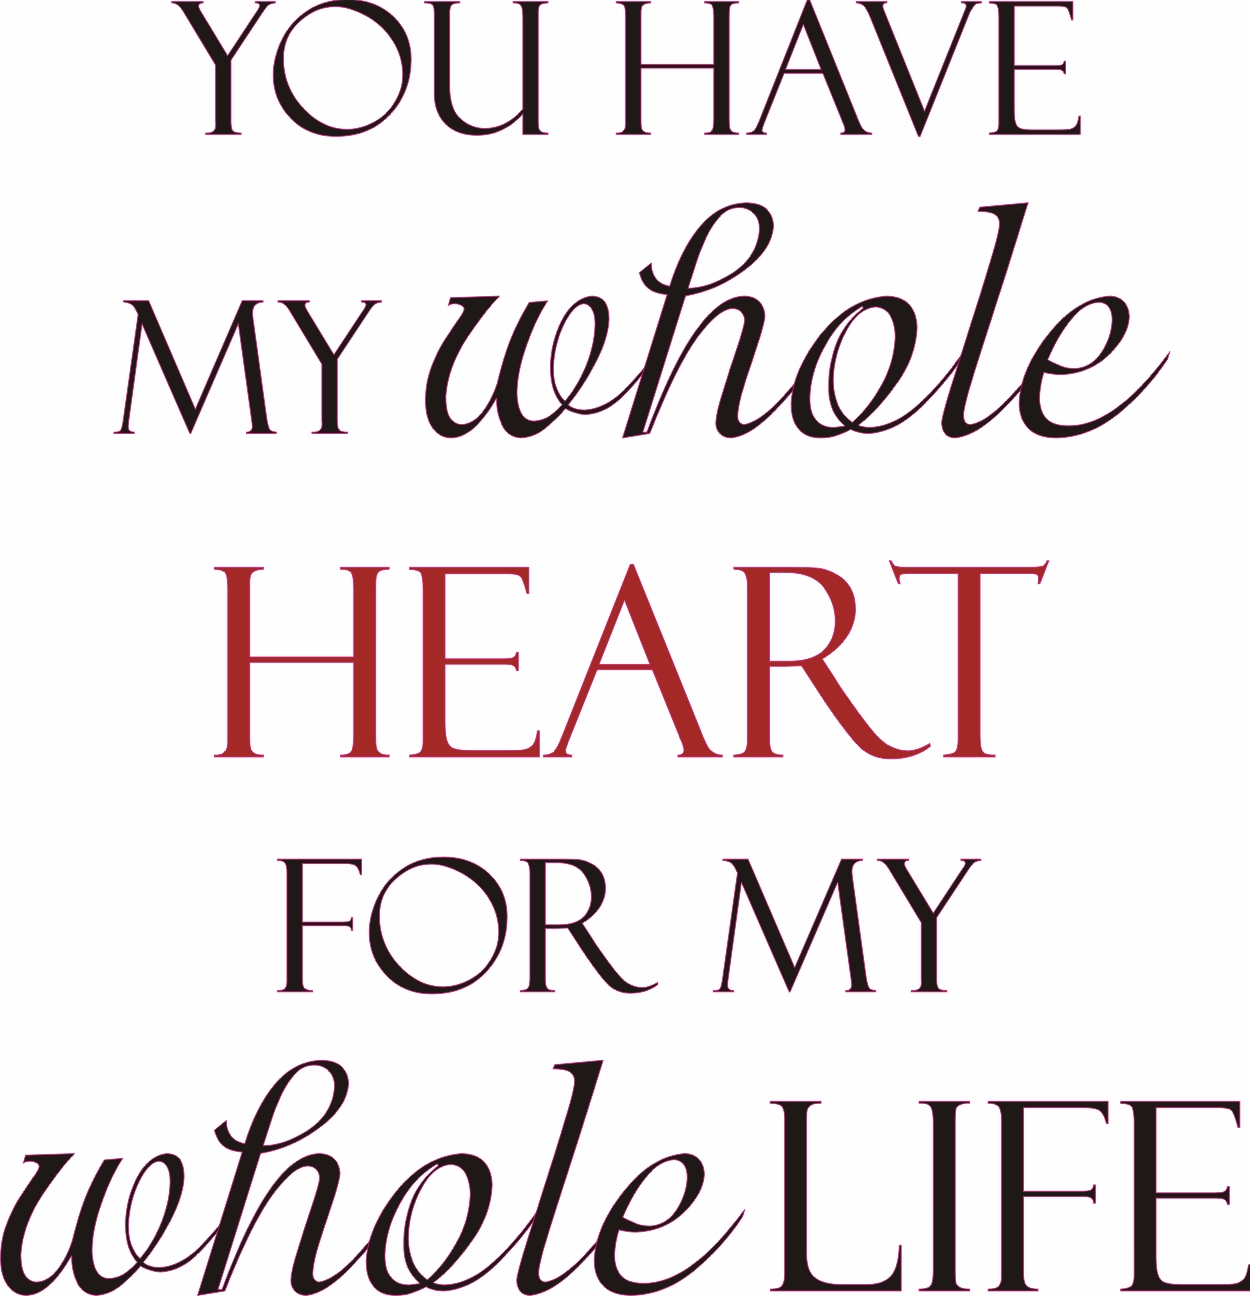 Whole Life Quote Enchanting You Have My Whole Heart For My Whole Life  Quote The Walls